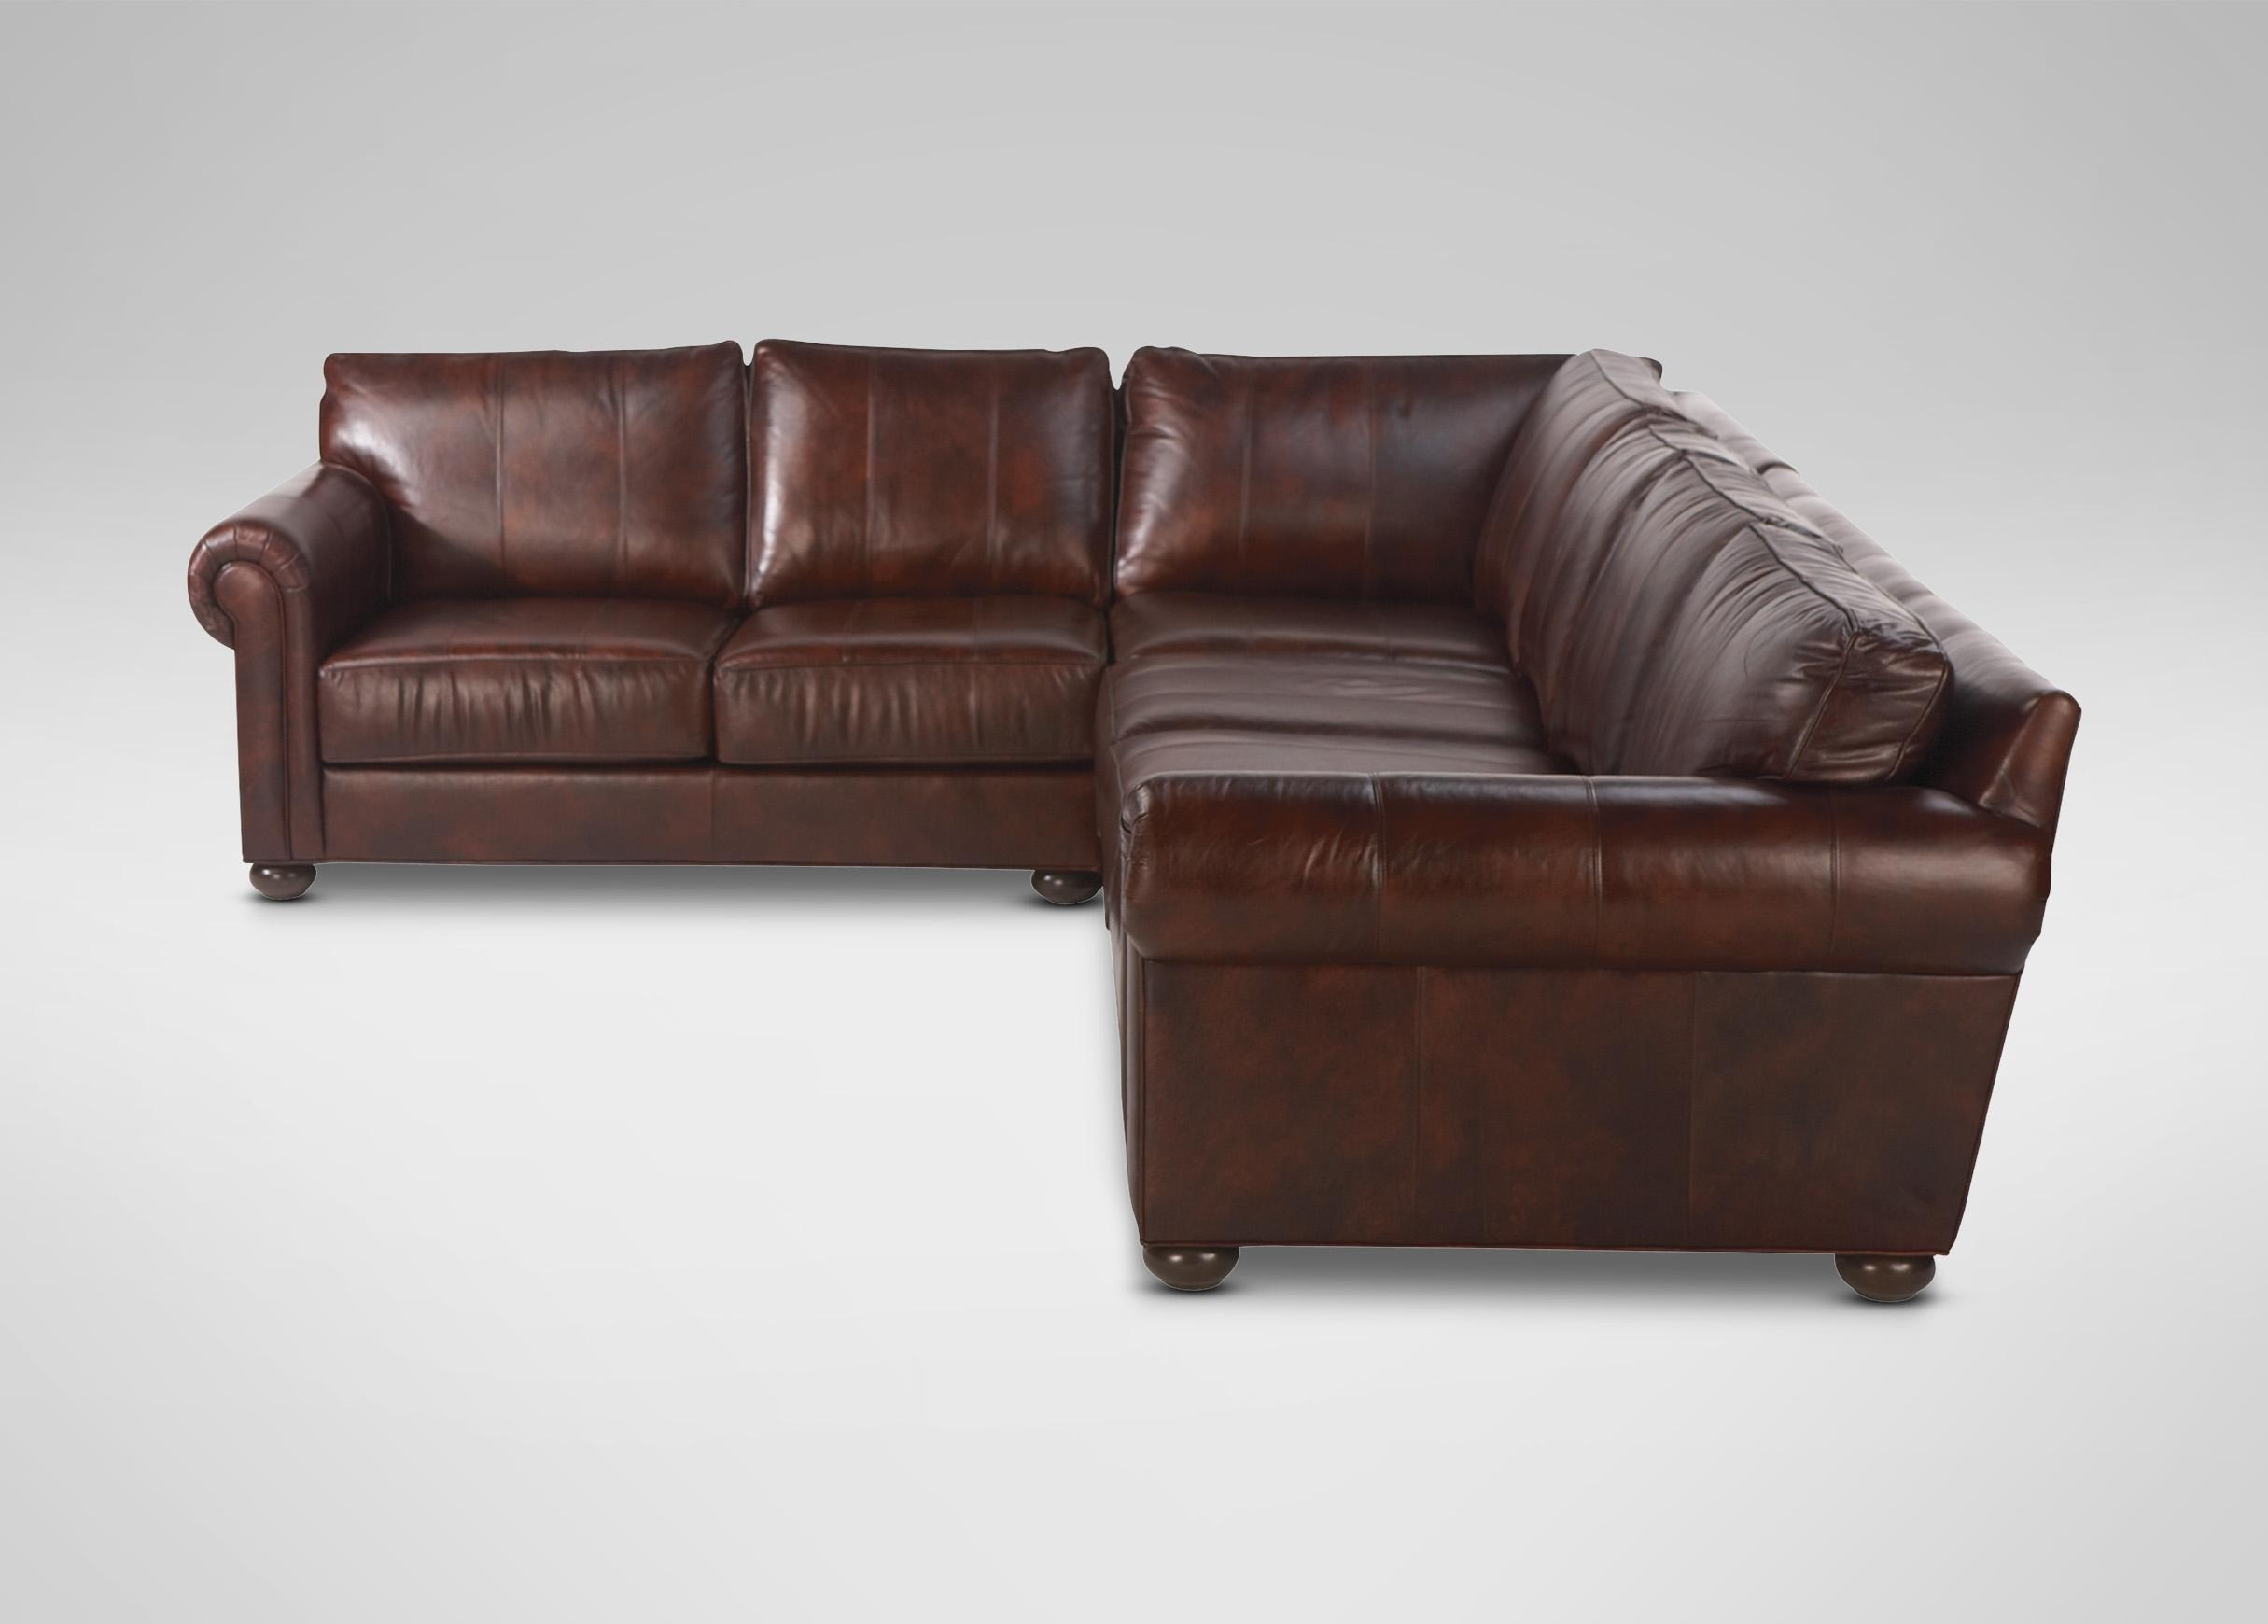 pratts leather sofas home furniture sofa images 20 collection of richmond ideas